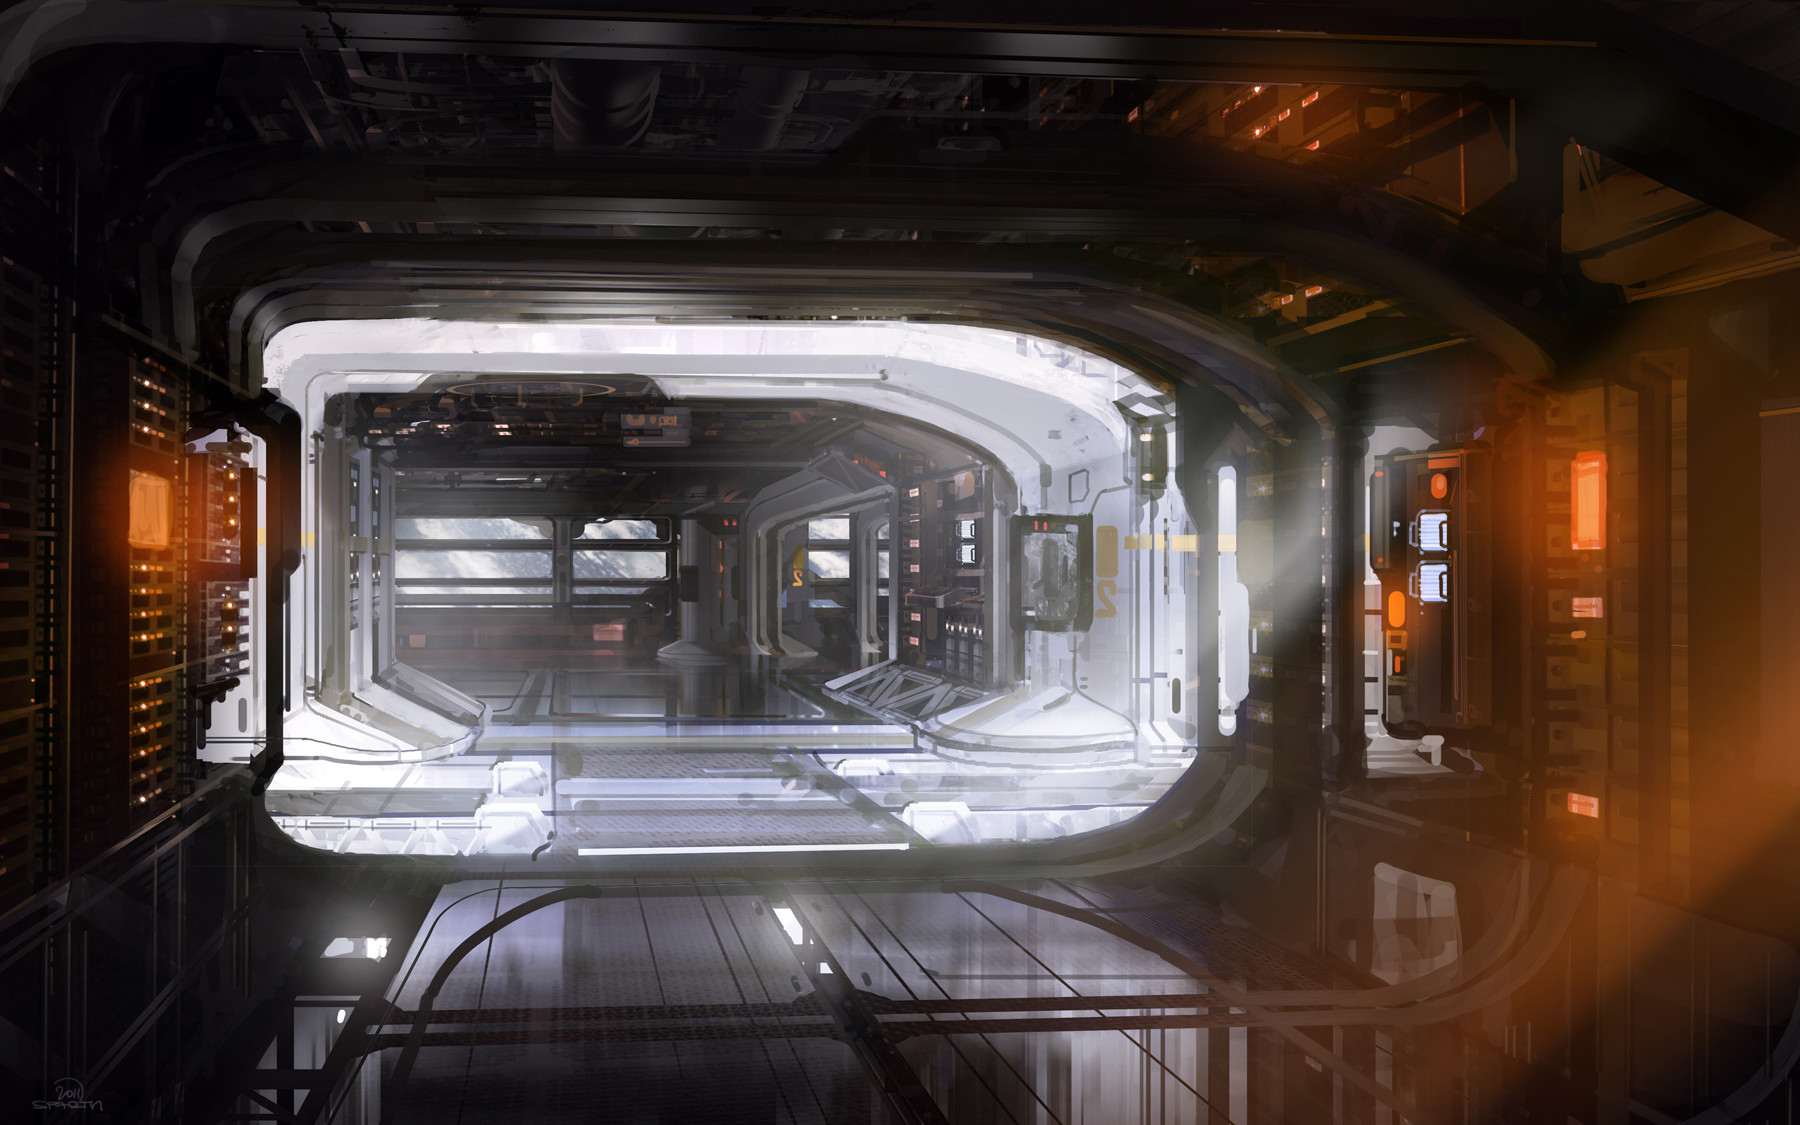 Space station interior final